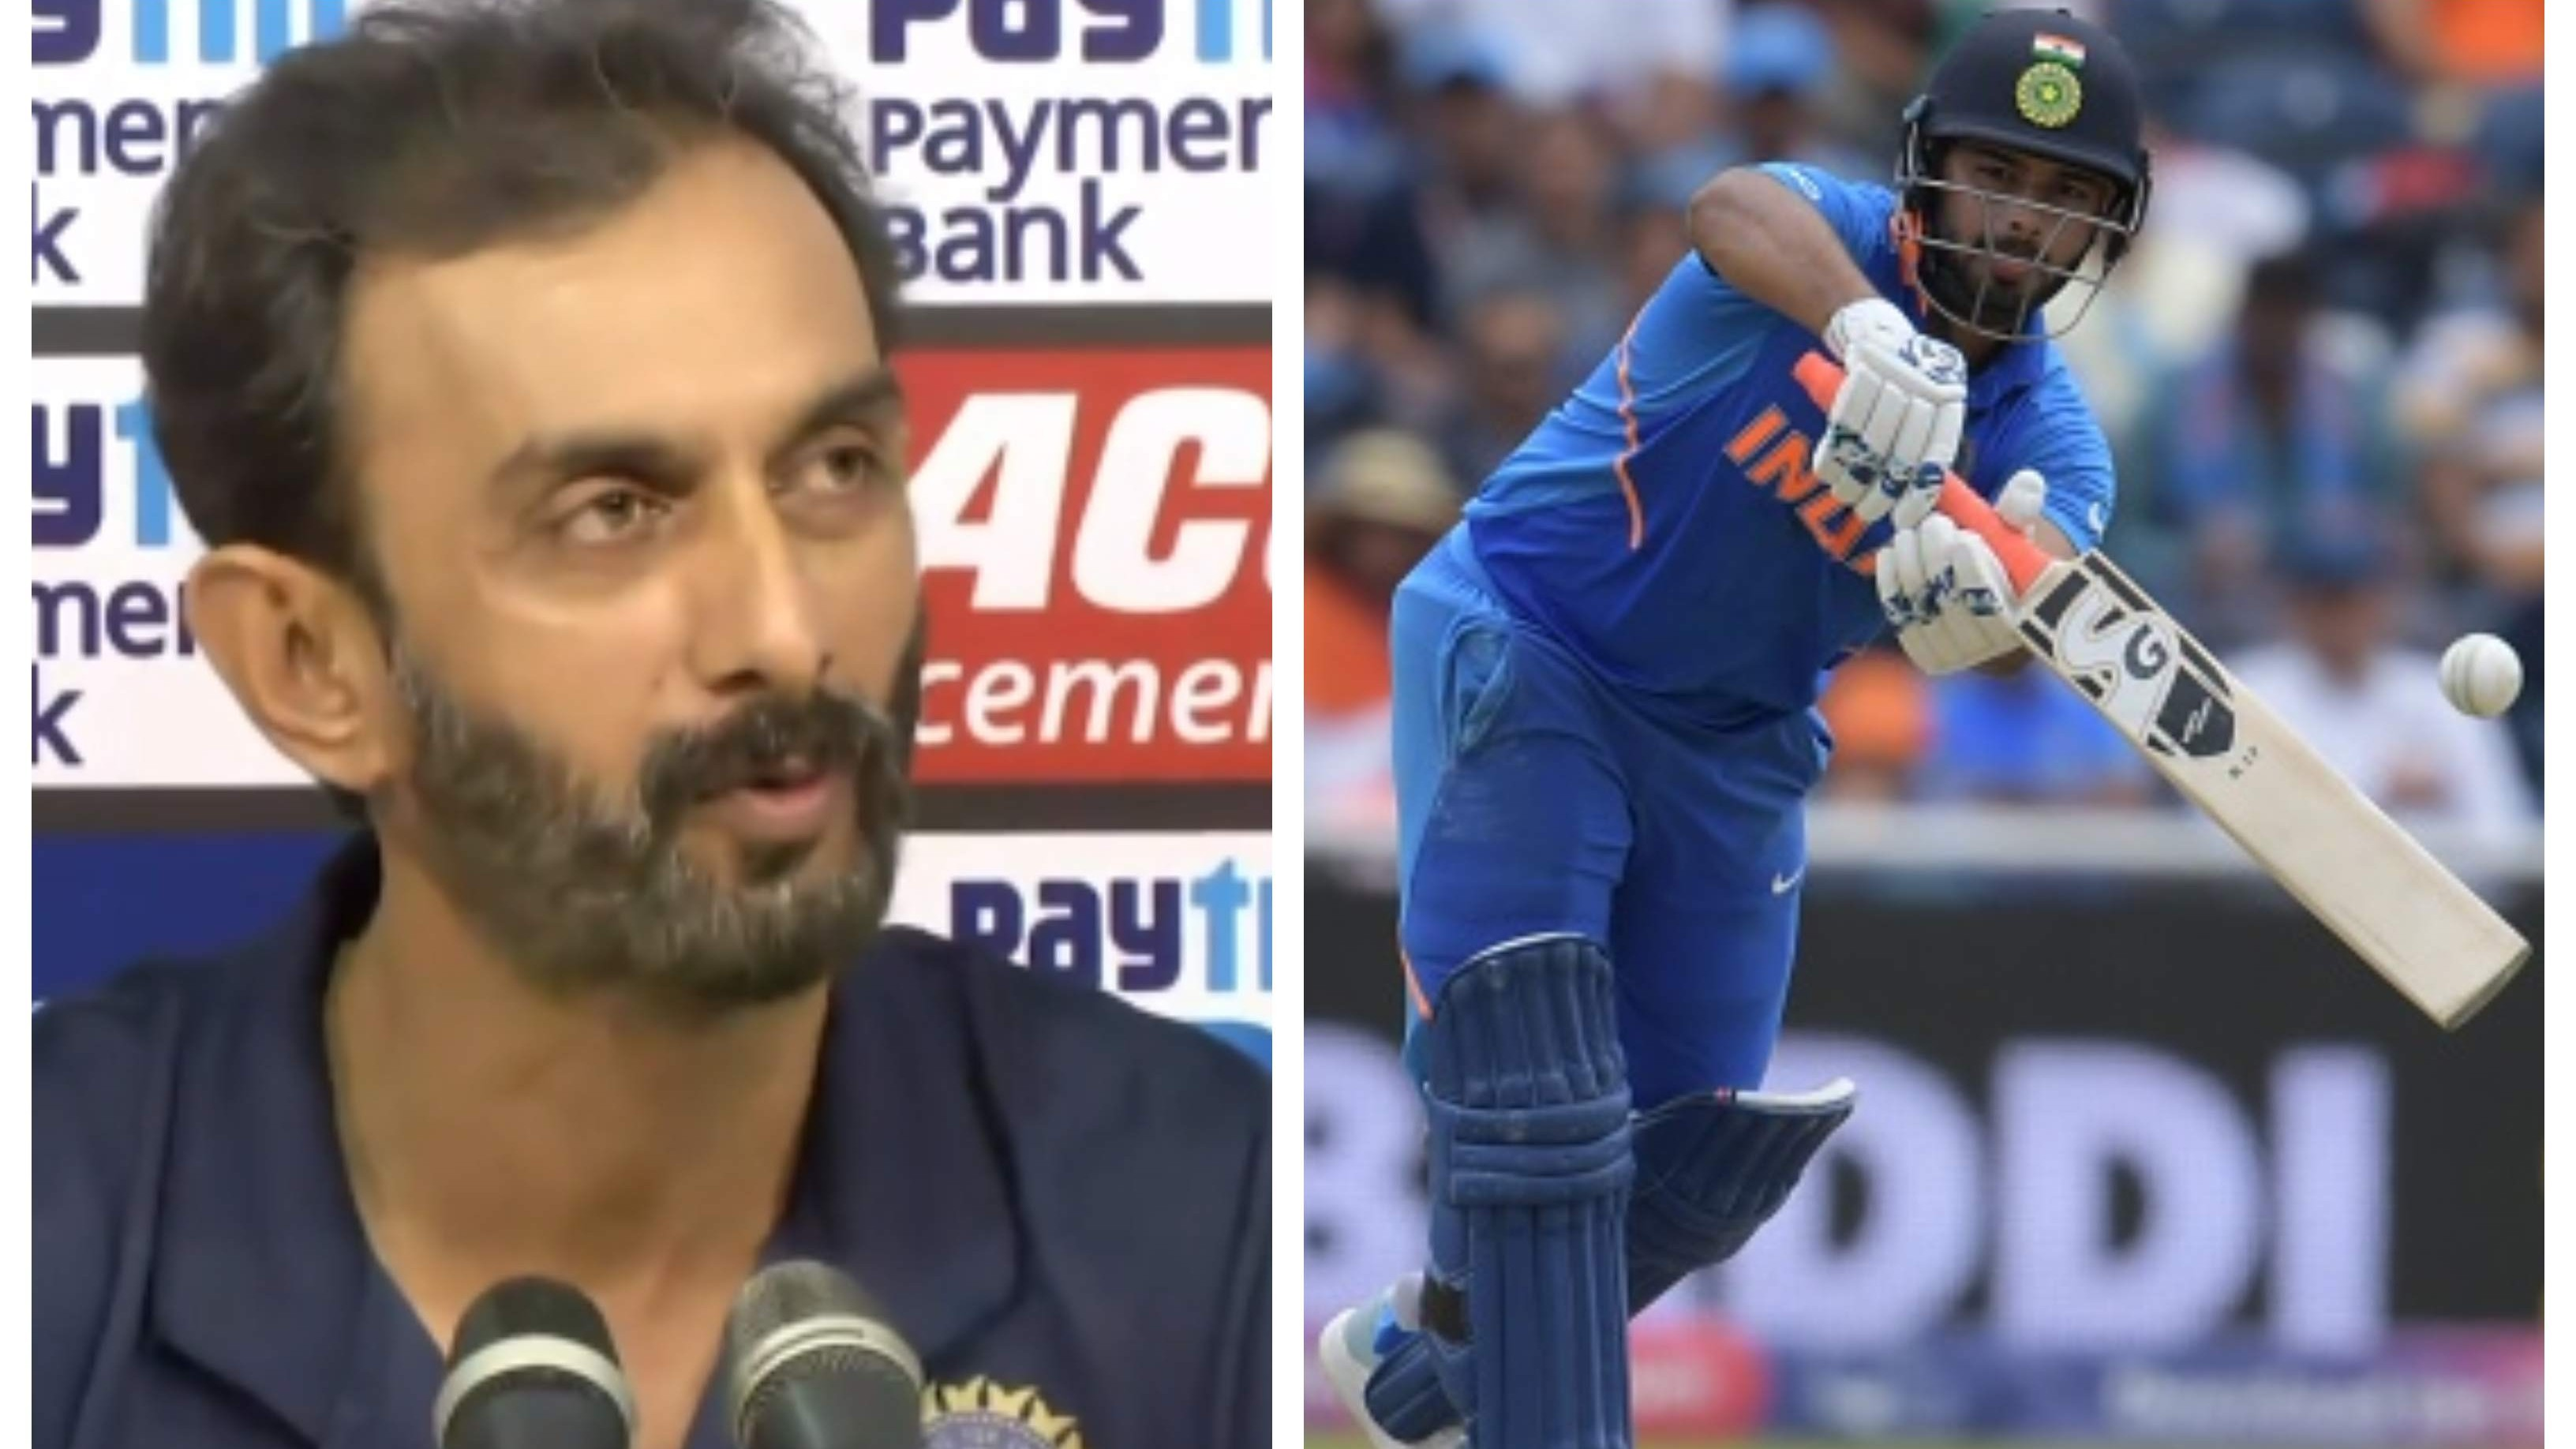 """IND v WI 2019: """"Pant has immense ability, can be an x-factor in Team India,"""" says Vikram Rathour"""